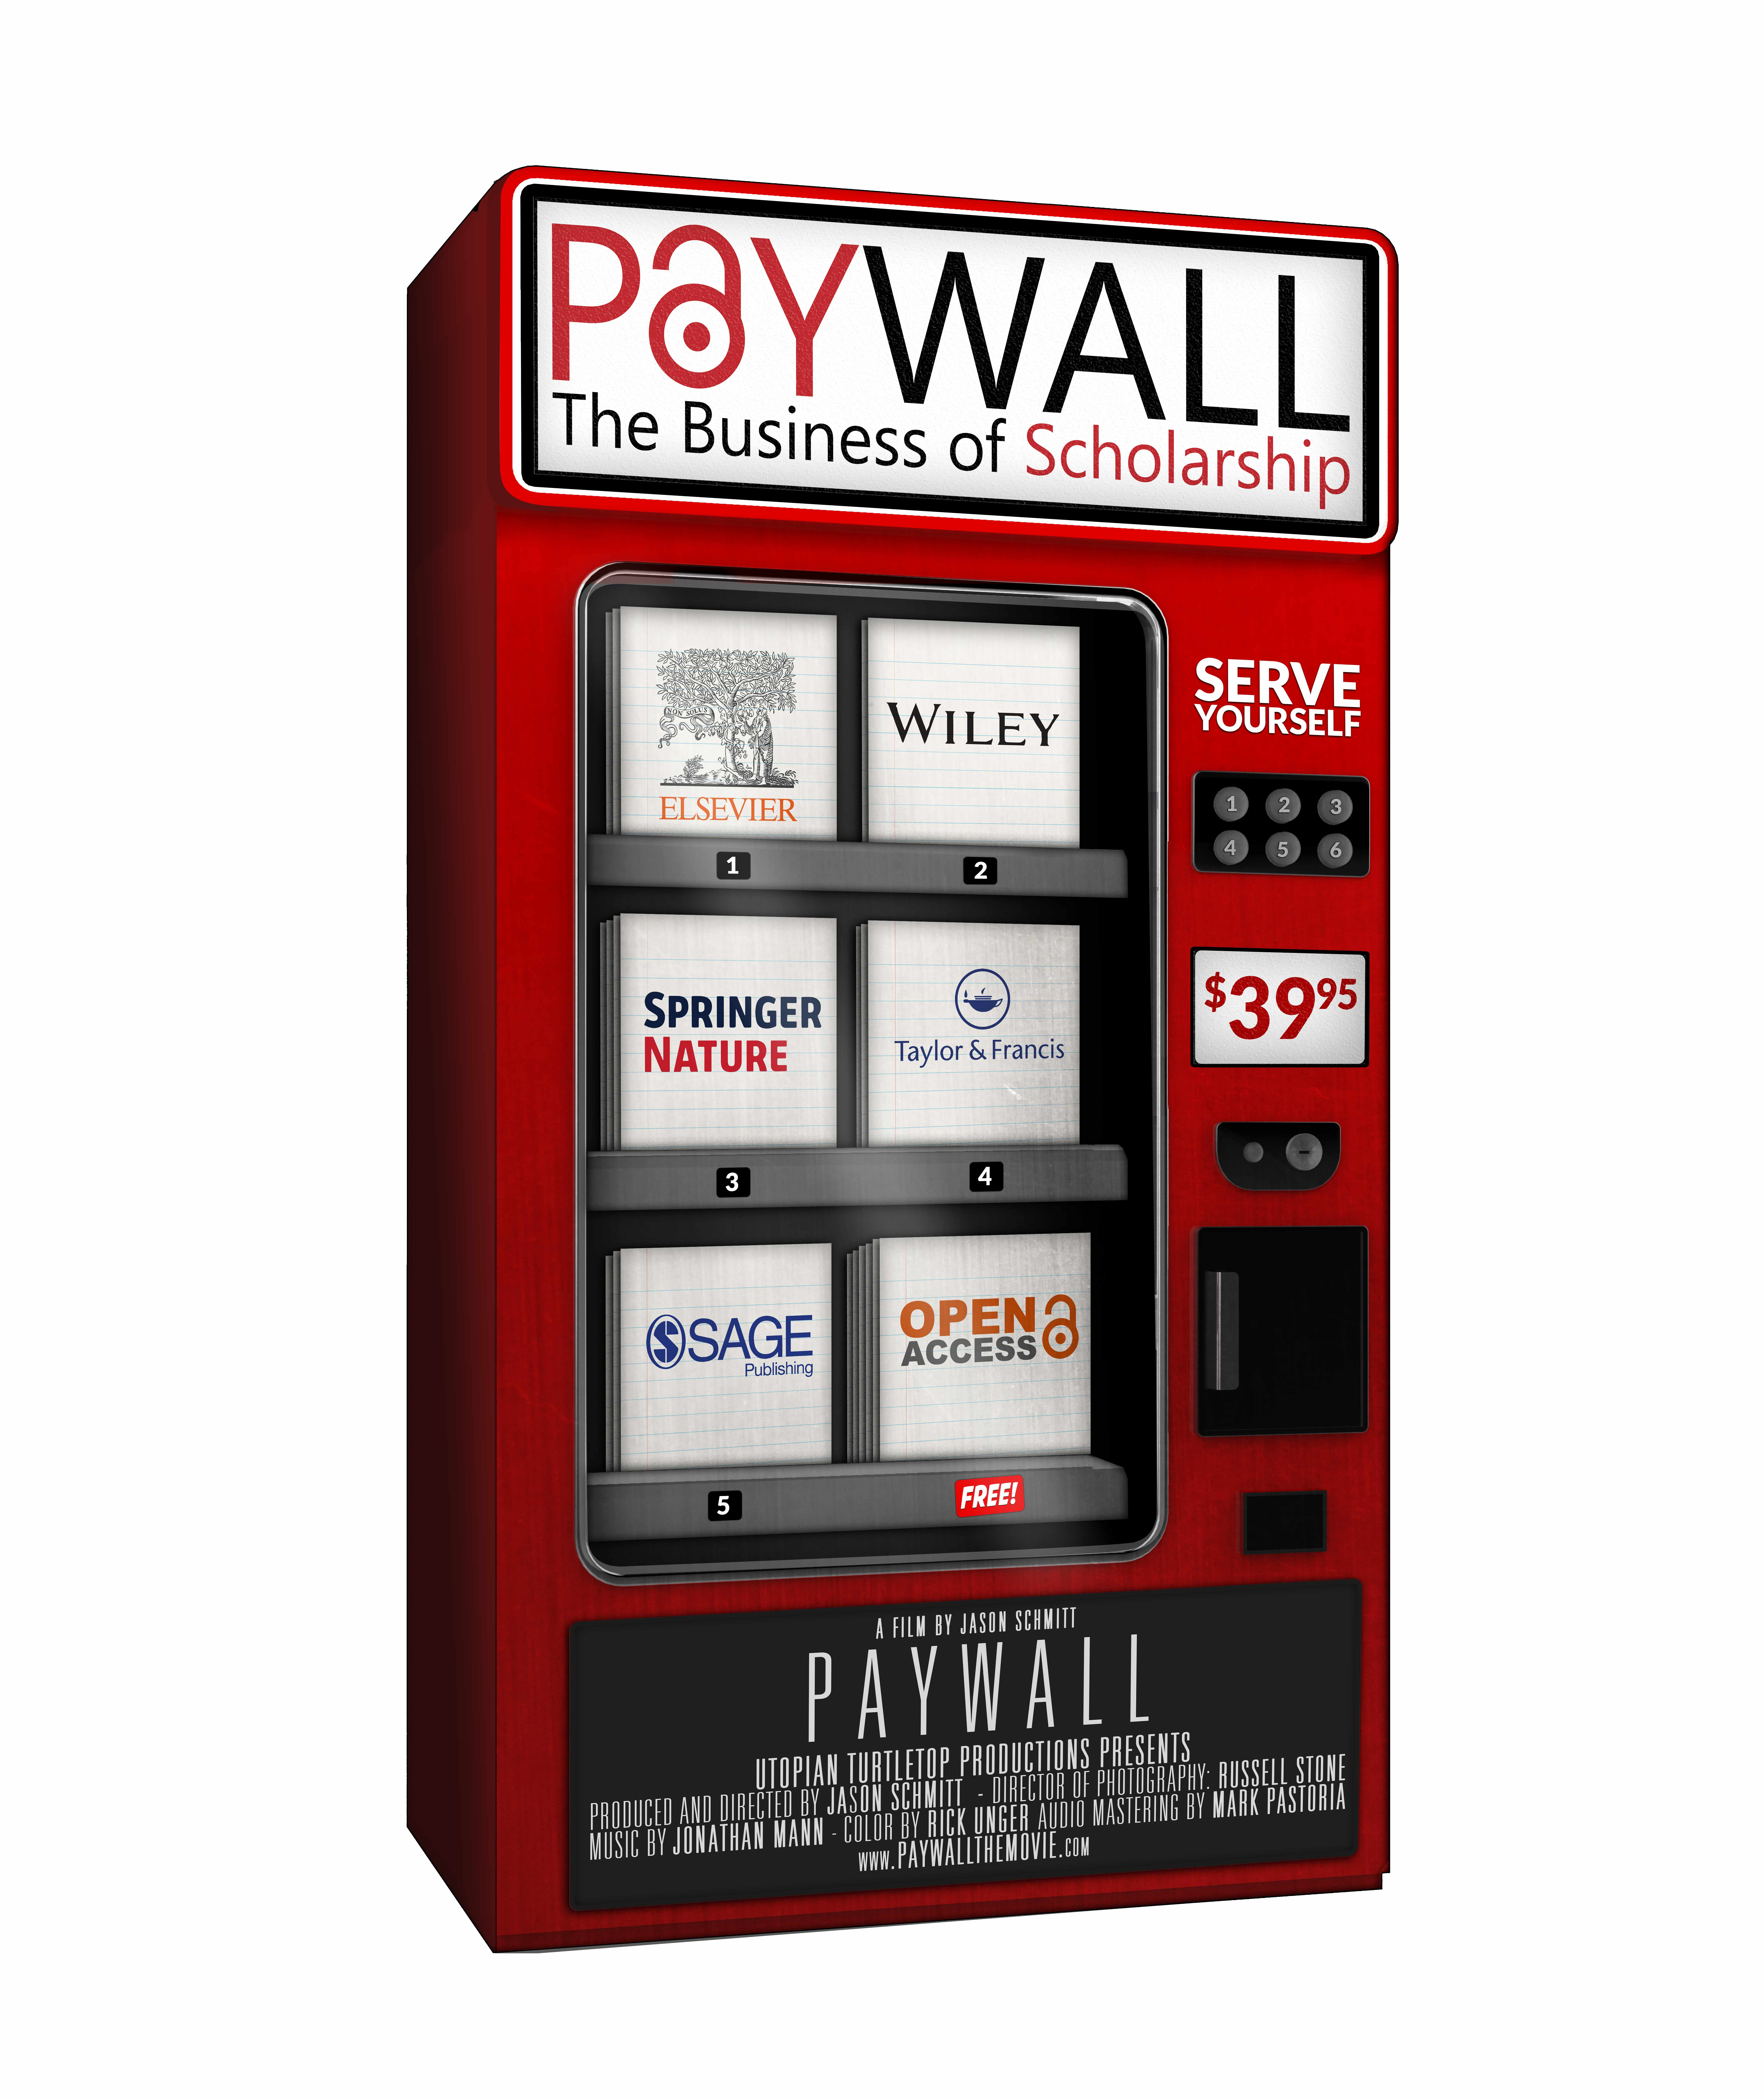 Film Screening: Paywall - The Business of Scholarship